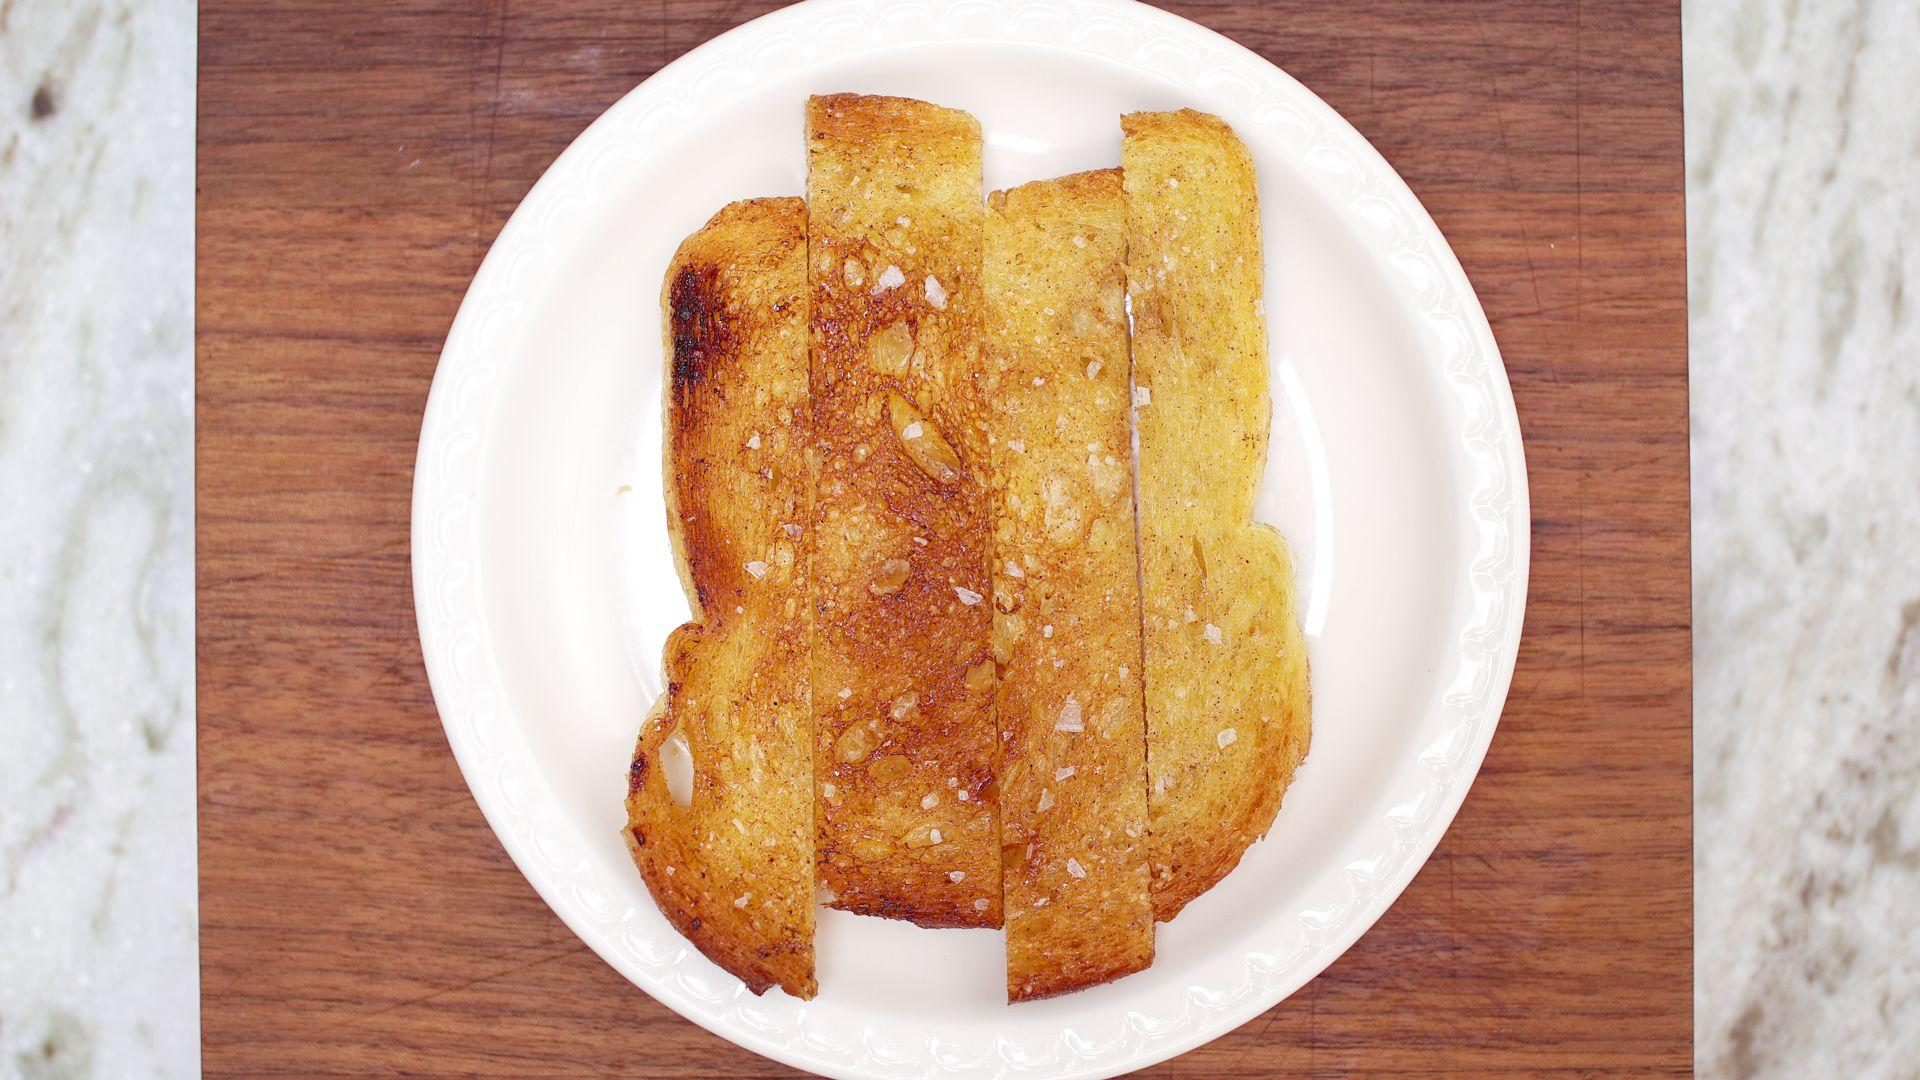 How to Make Griddled Cinnamon Toast